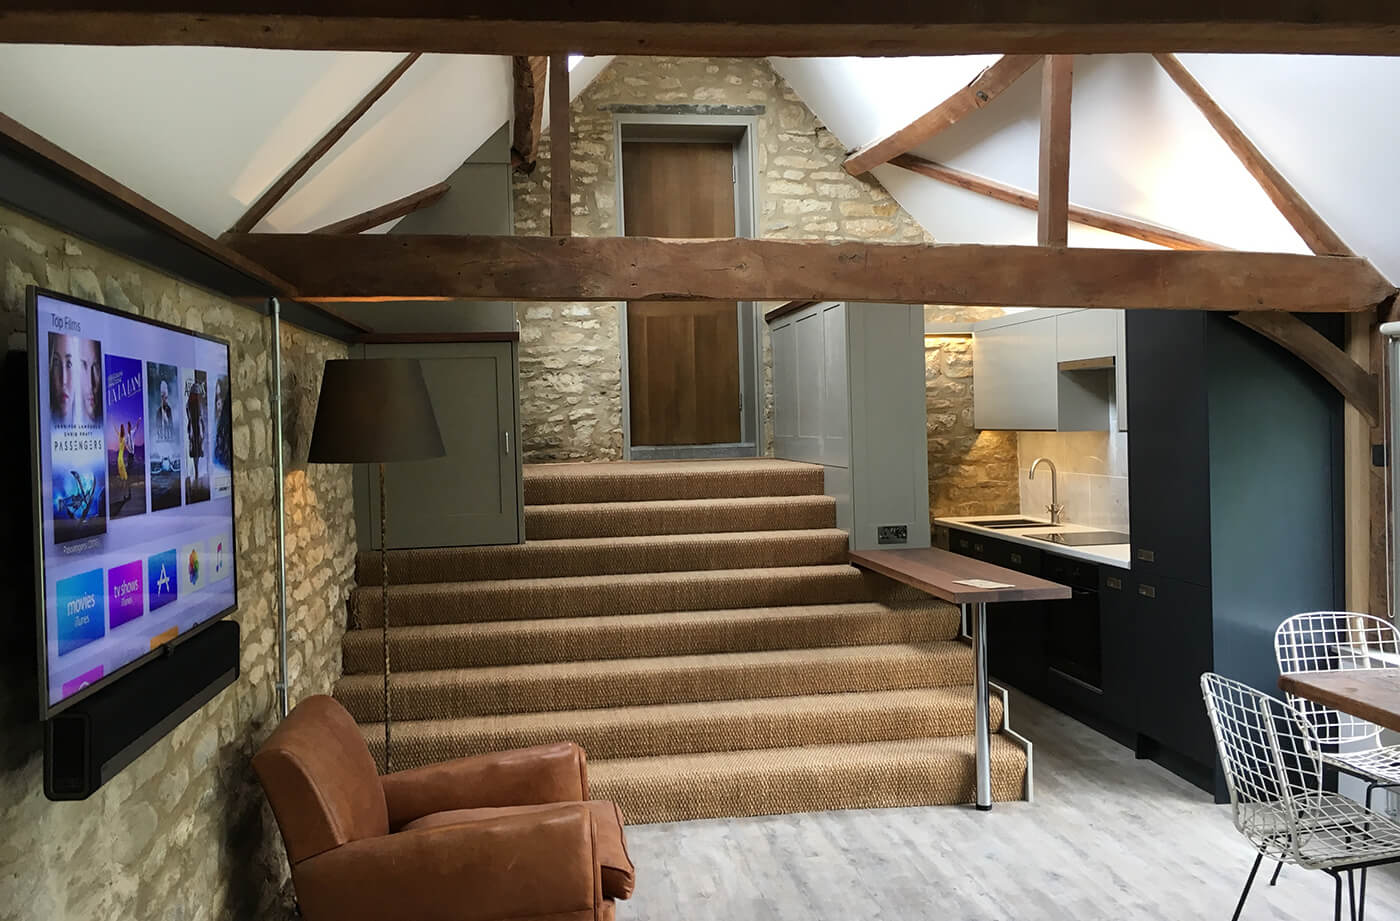 Audio Visual  - As well as having seamless WiFi throughout the property has modern TVs and Sonos multi room audio system so they can enjoy watching TV and listening to music throughout.The elegant installation and high quality components give a great audio visual experience whist being incredibly easy to use.